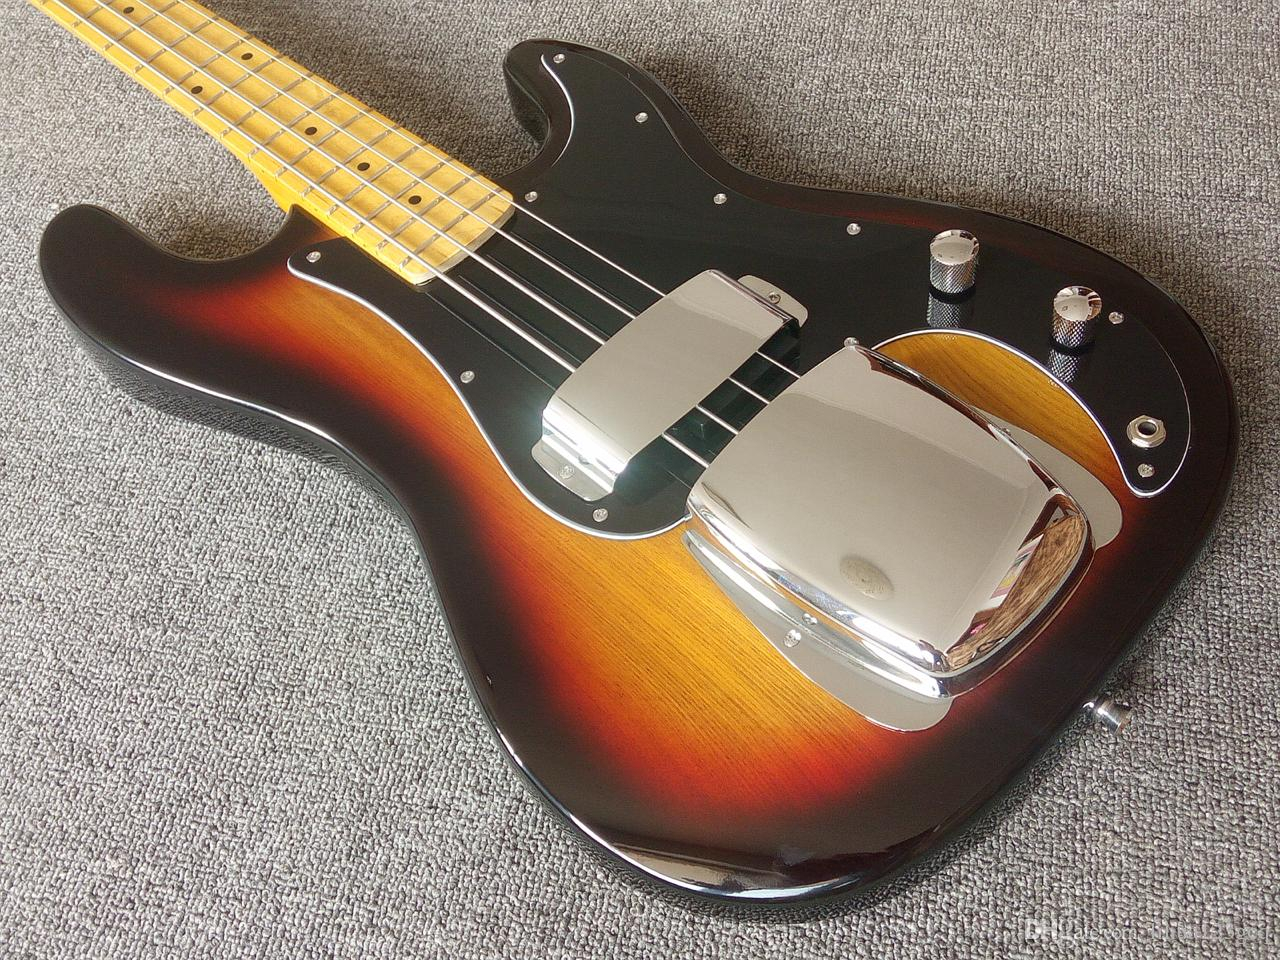 Bass Guitar Chords Top Quality 3 Tobacco Sunburst20 Frets4 Strings Pb Bassbridge Pickup Protection Steel Shieldmaple Neckelectric Bass Guitars